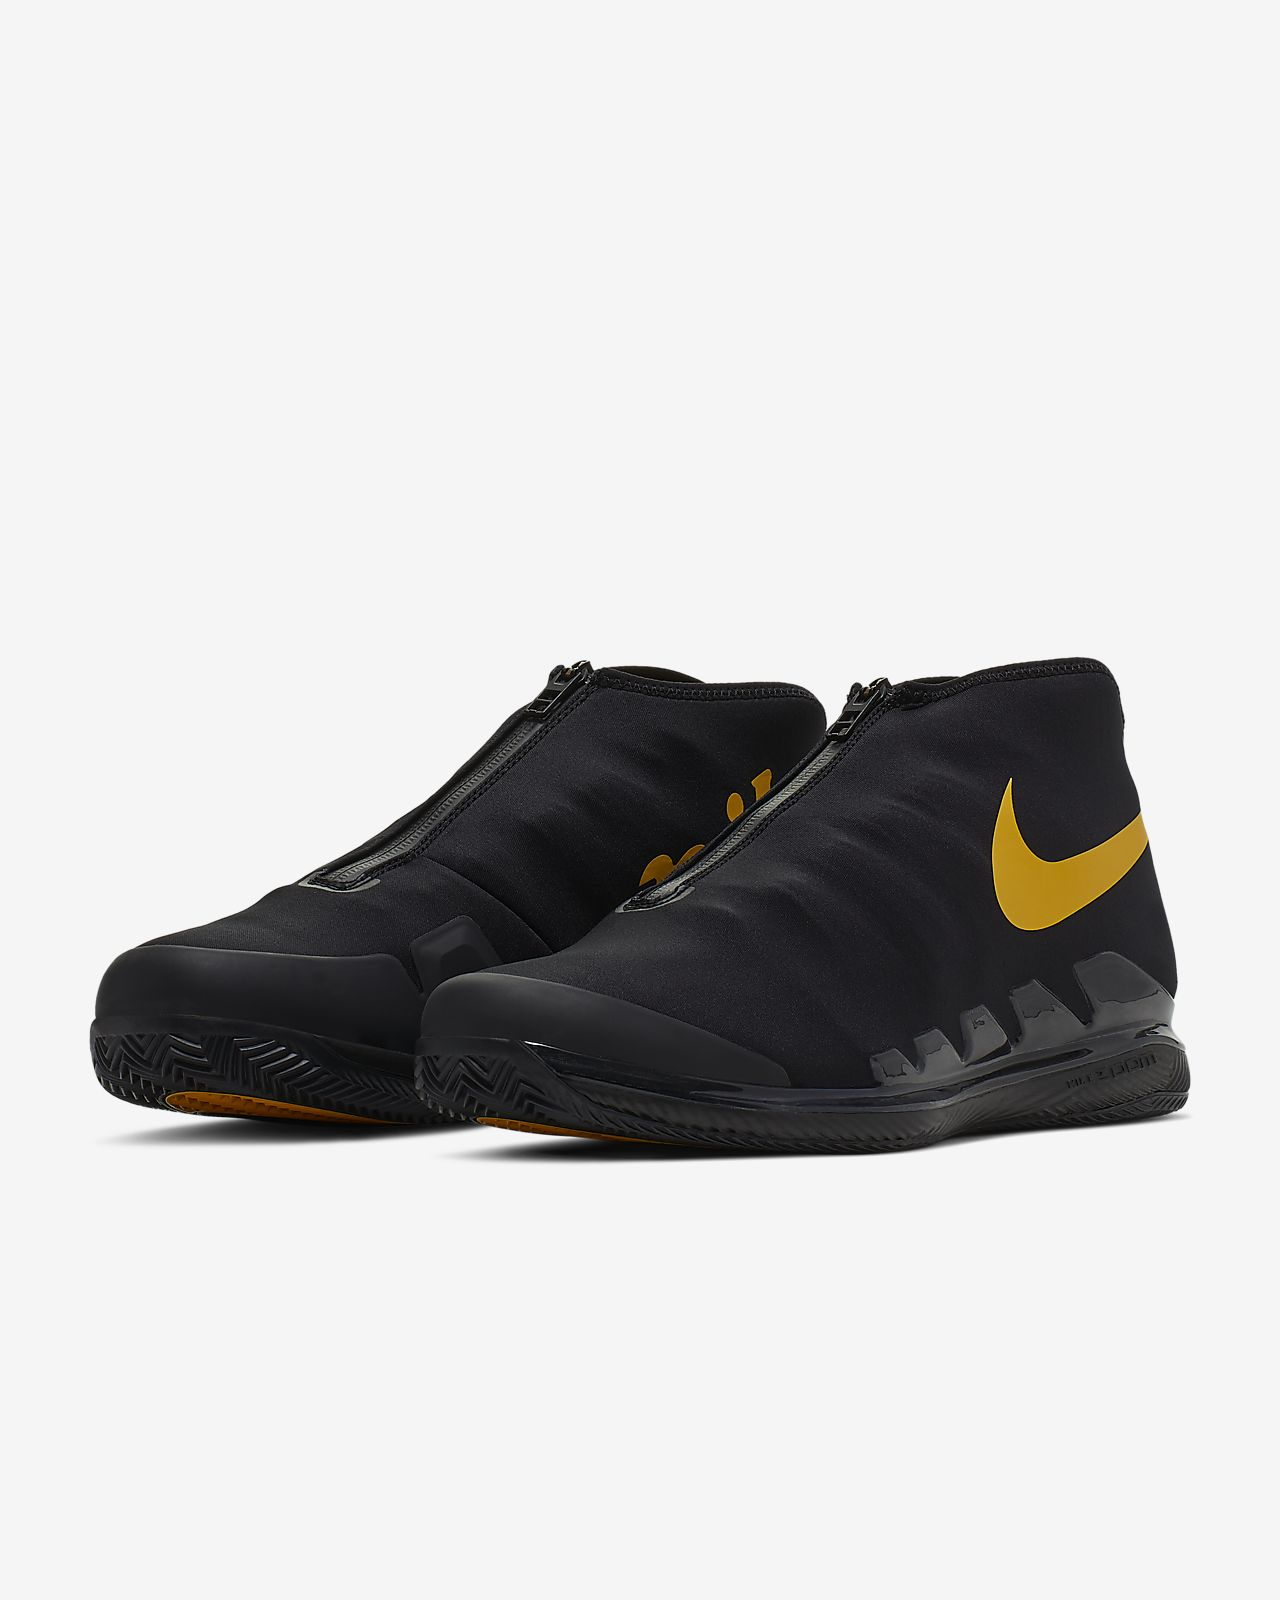 823782c6c378 NikeCourt Air Zoom Vapor X Glove Men's Clay Tennis Shoe. Nike.com